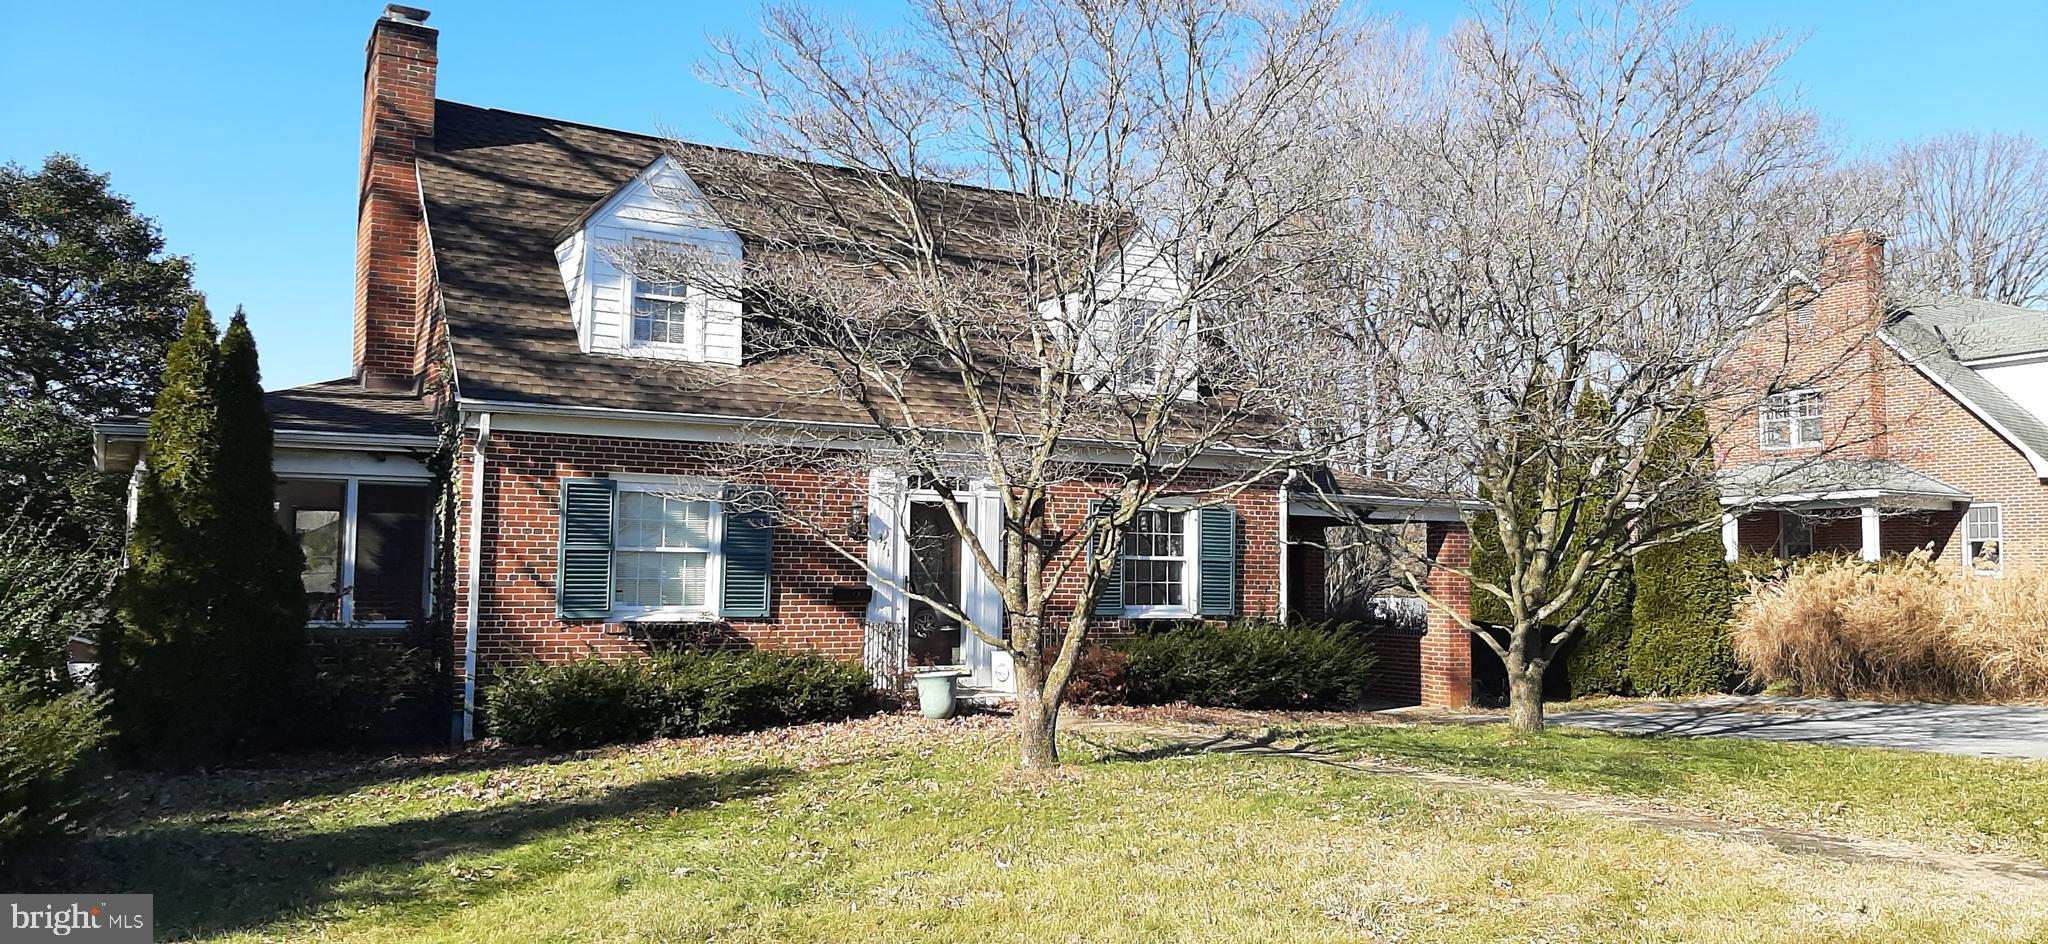 Well located Brick Cape Cod with three bedrooms, (one on the main level). Formal Living Room w/wood